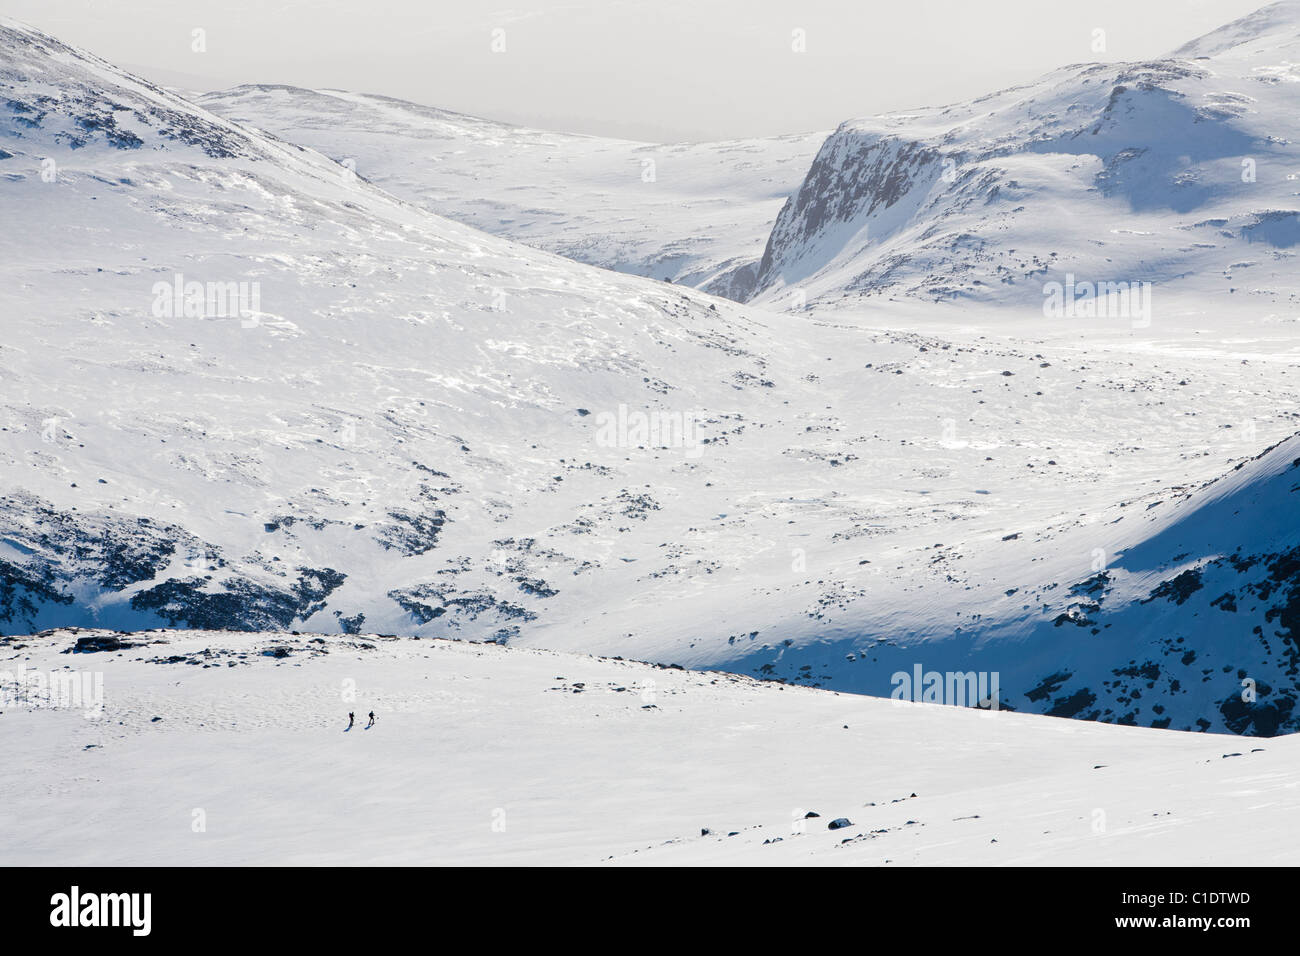 Ski mountaineers on the Cairngorm Plateau in full winter conditions, Scotland, UK. - Stock Image